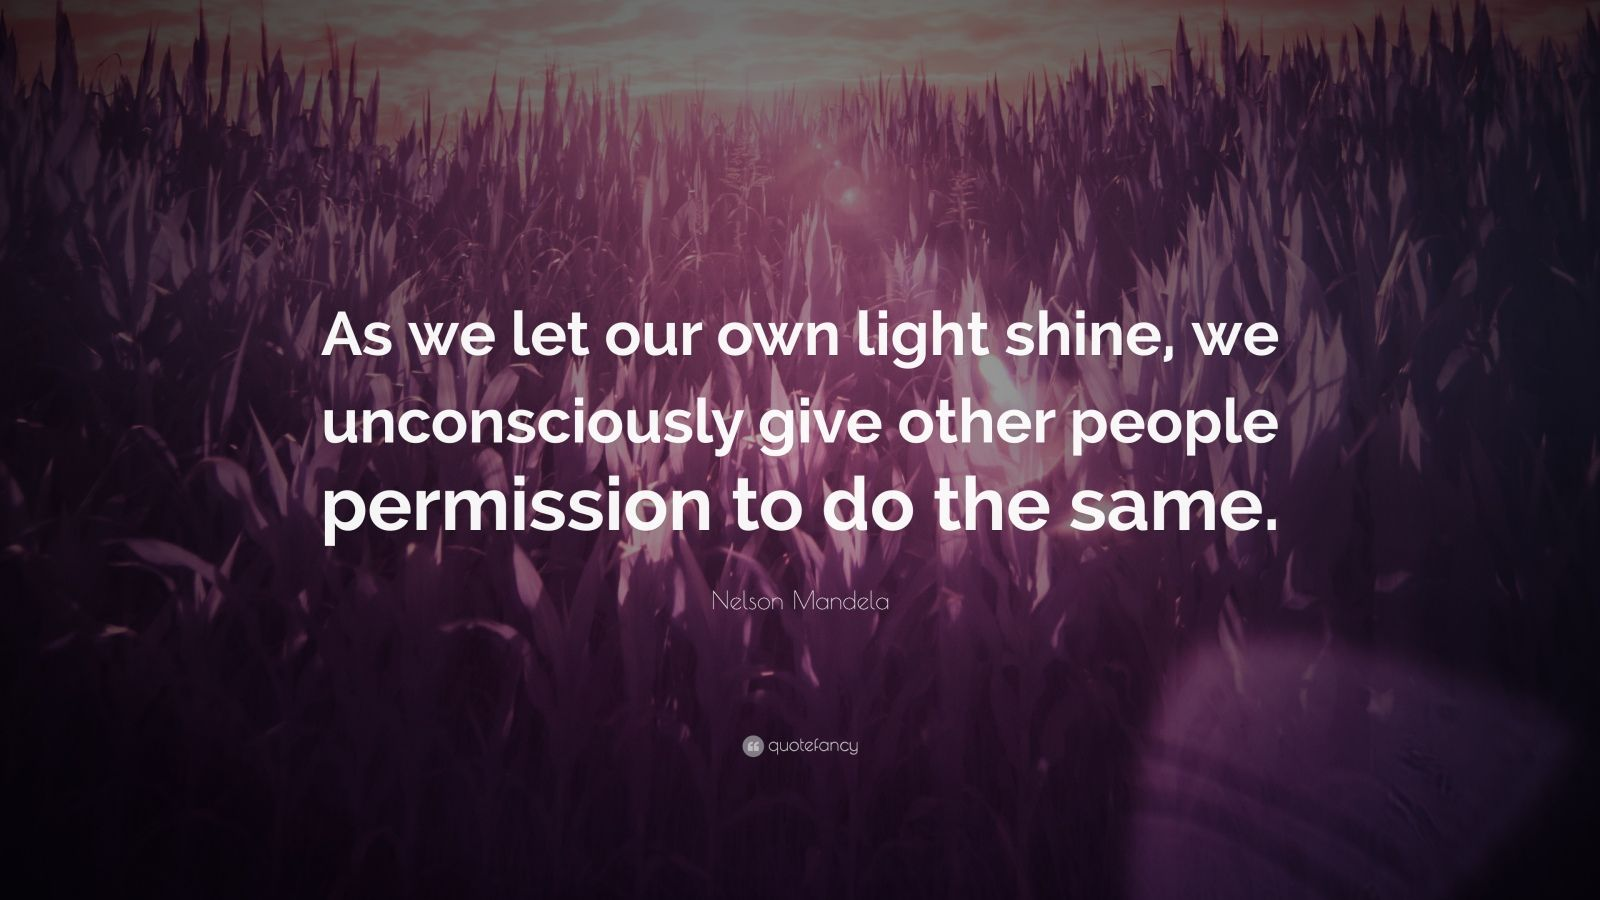 nelson mandela quote   u201c as we let our own light shine  we